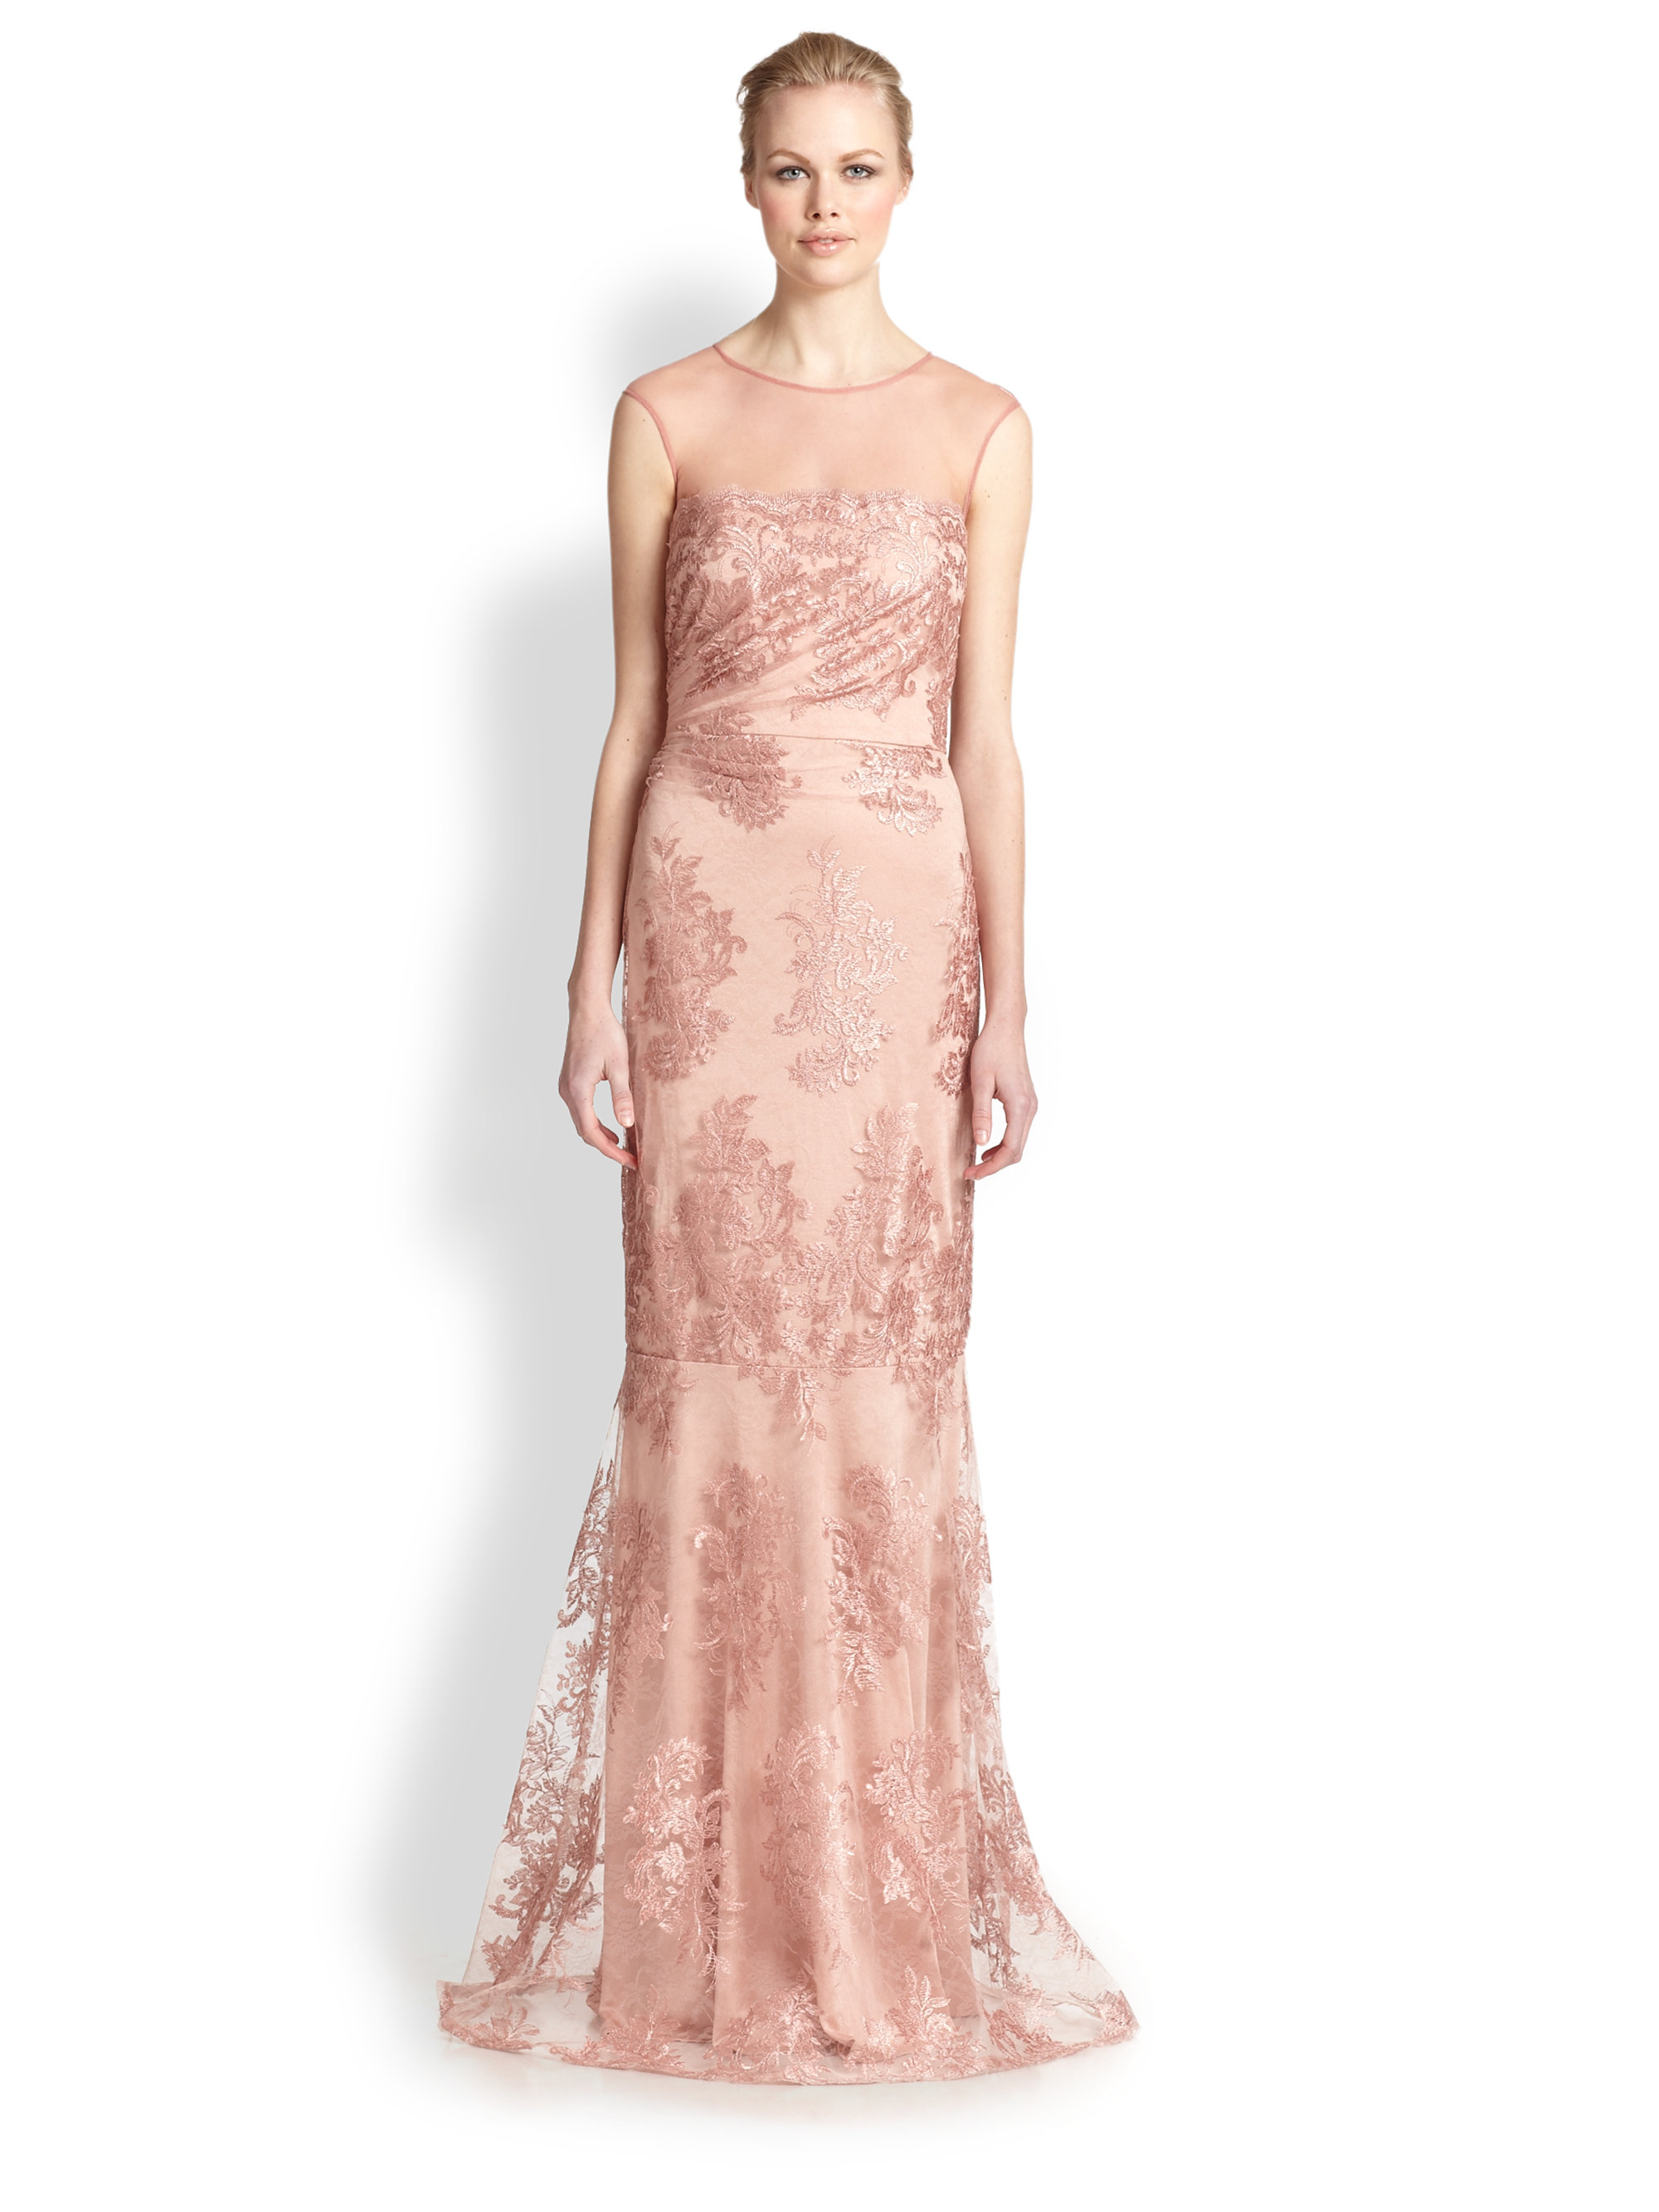 Lyst - David Meister Lace Gown in Pink